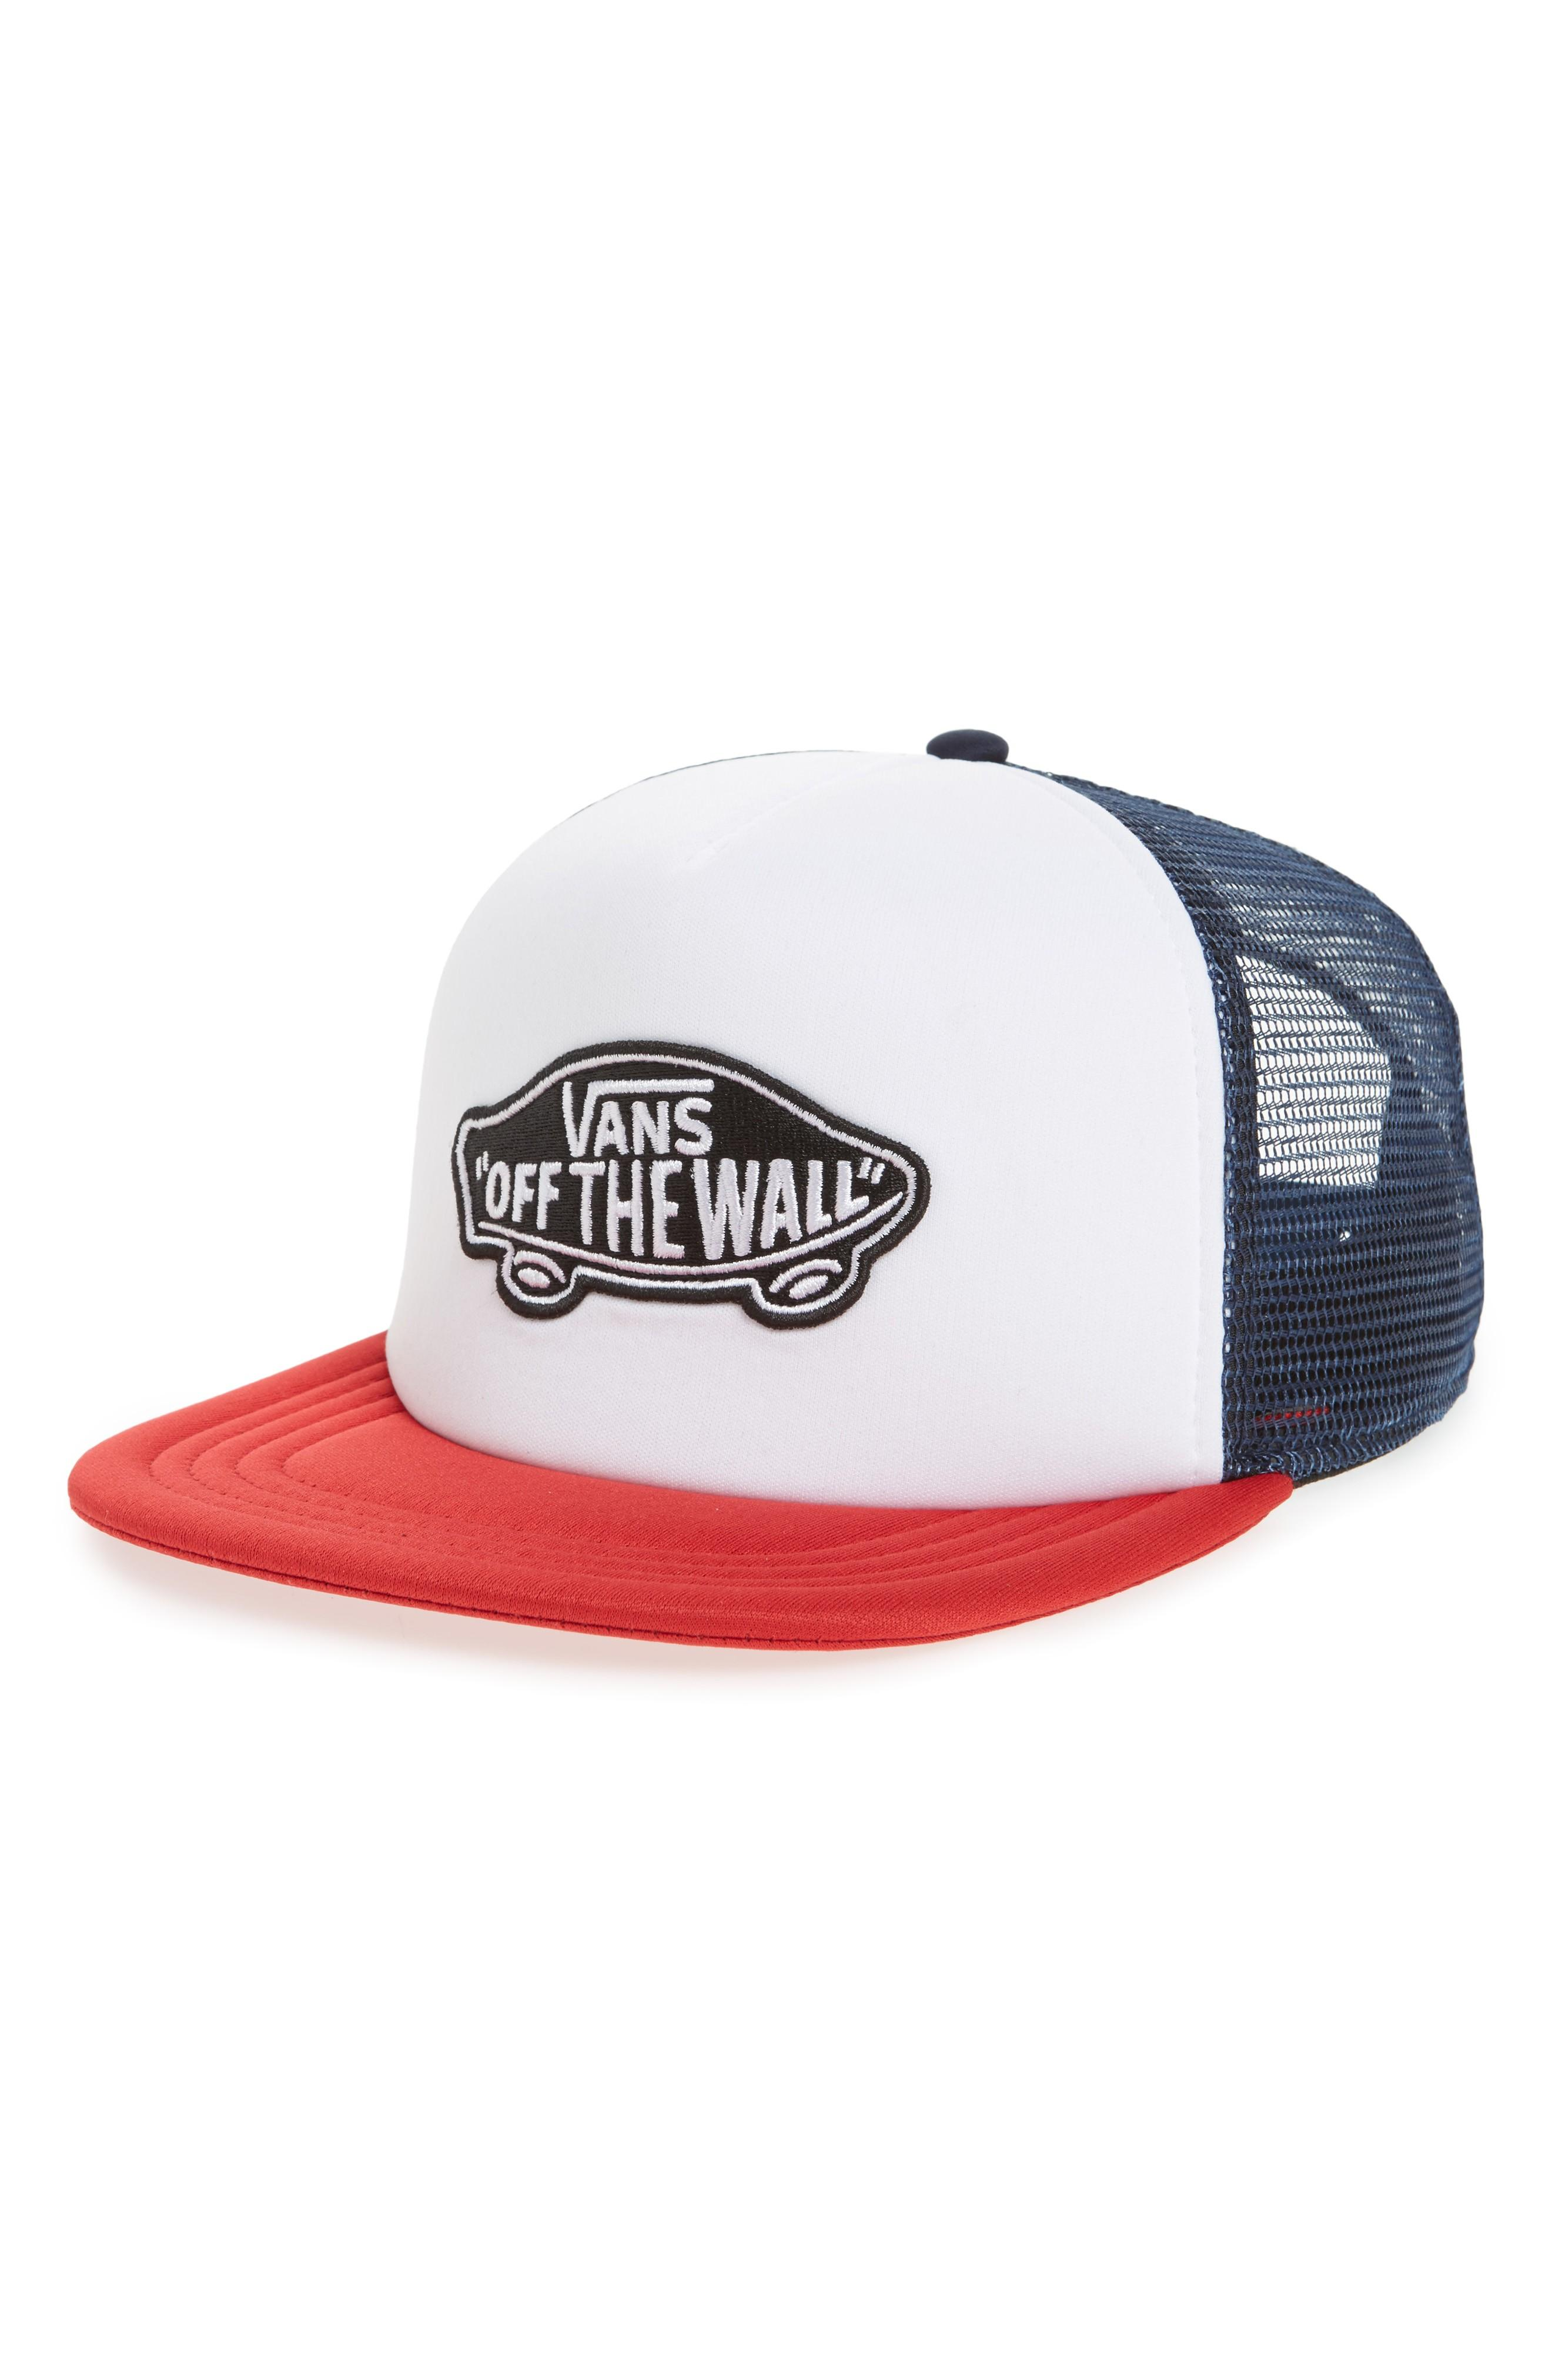 763fa587601 Vans Classic Patch Trucker Hat - Blue In Dress Blues  White  Chili ...